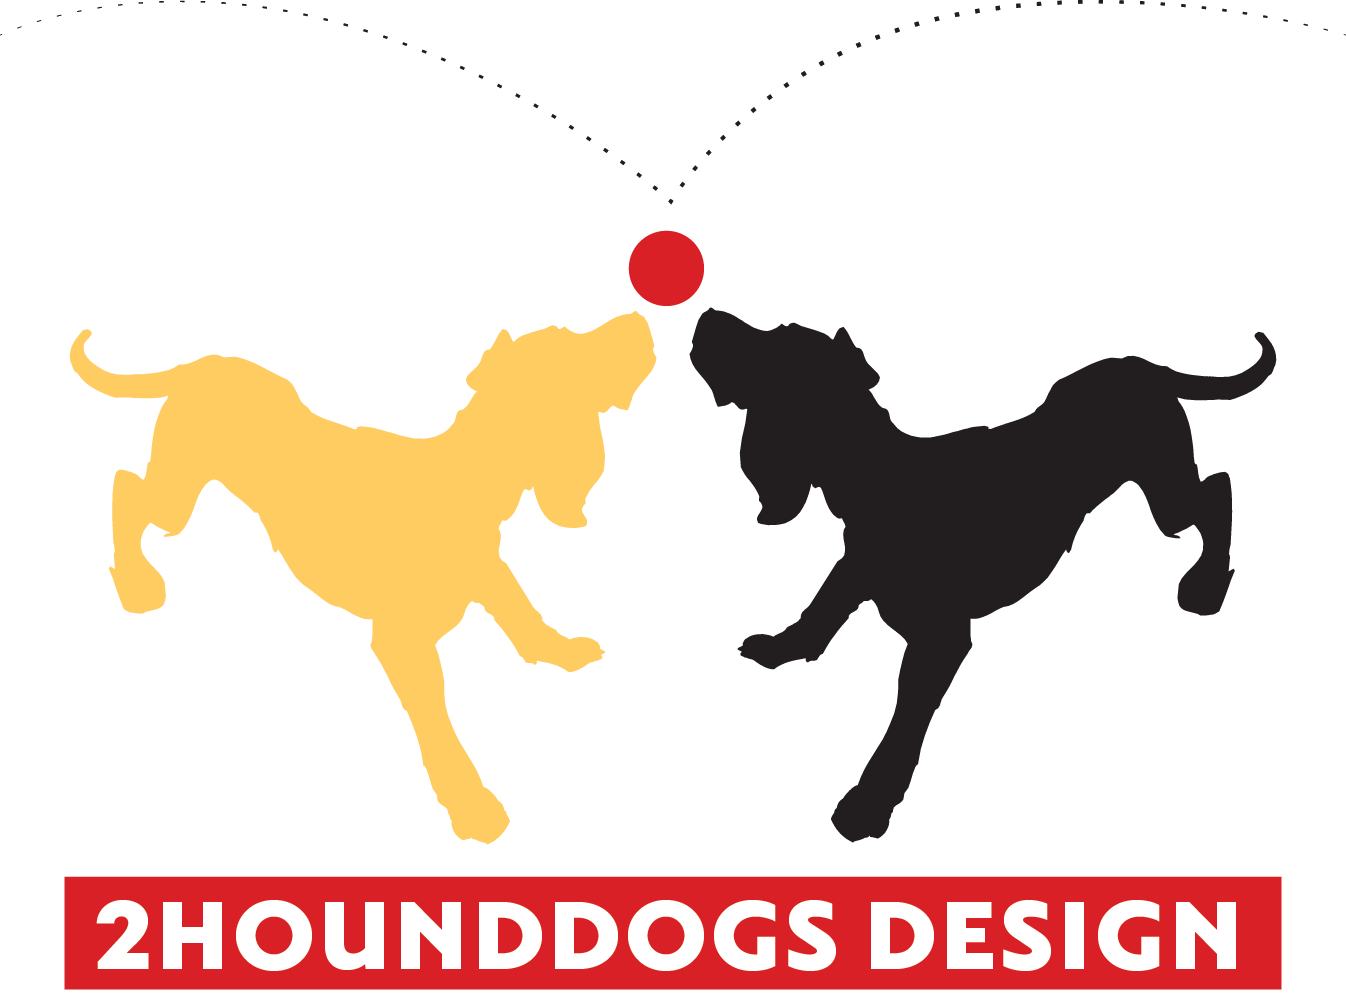 2hounddogs Design, LLC